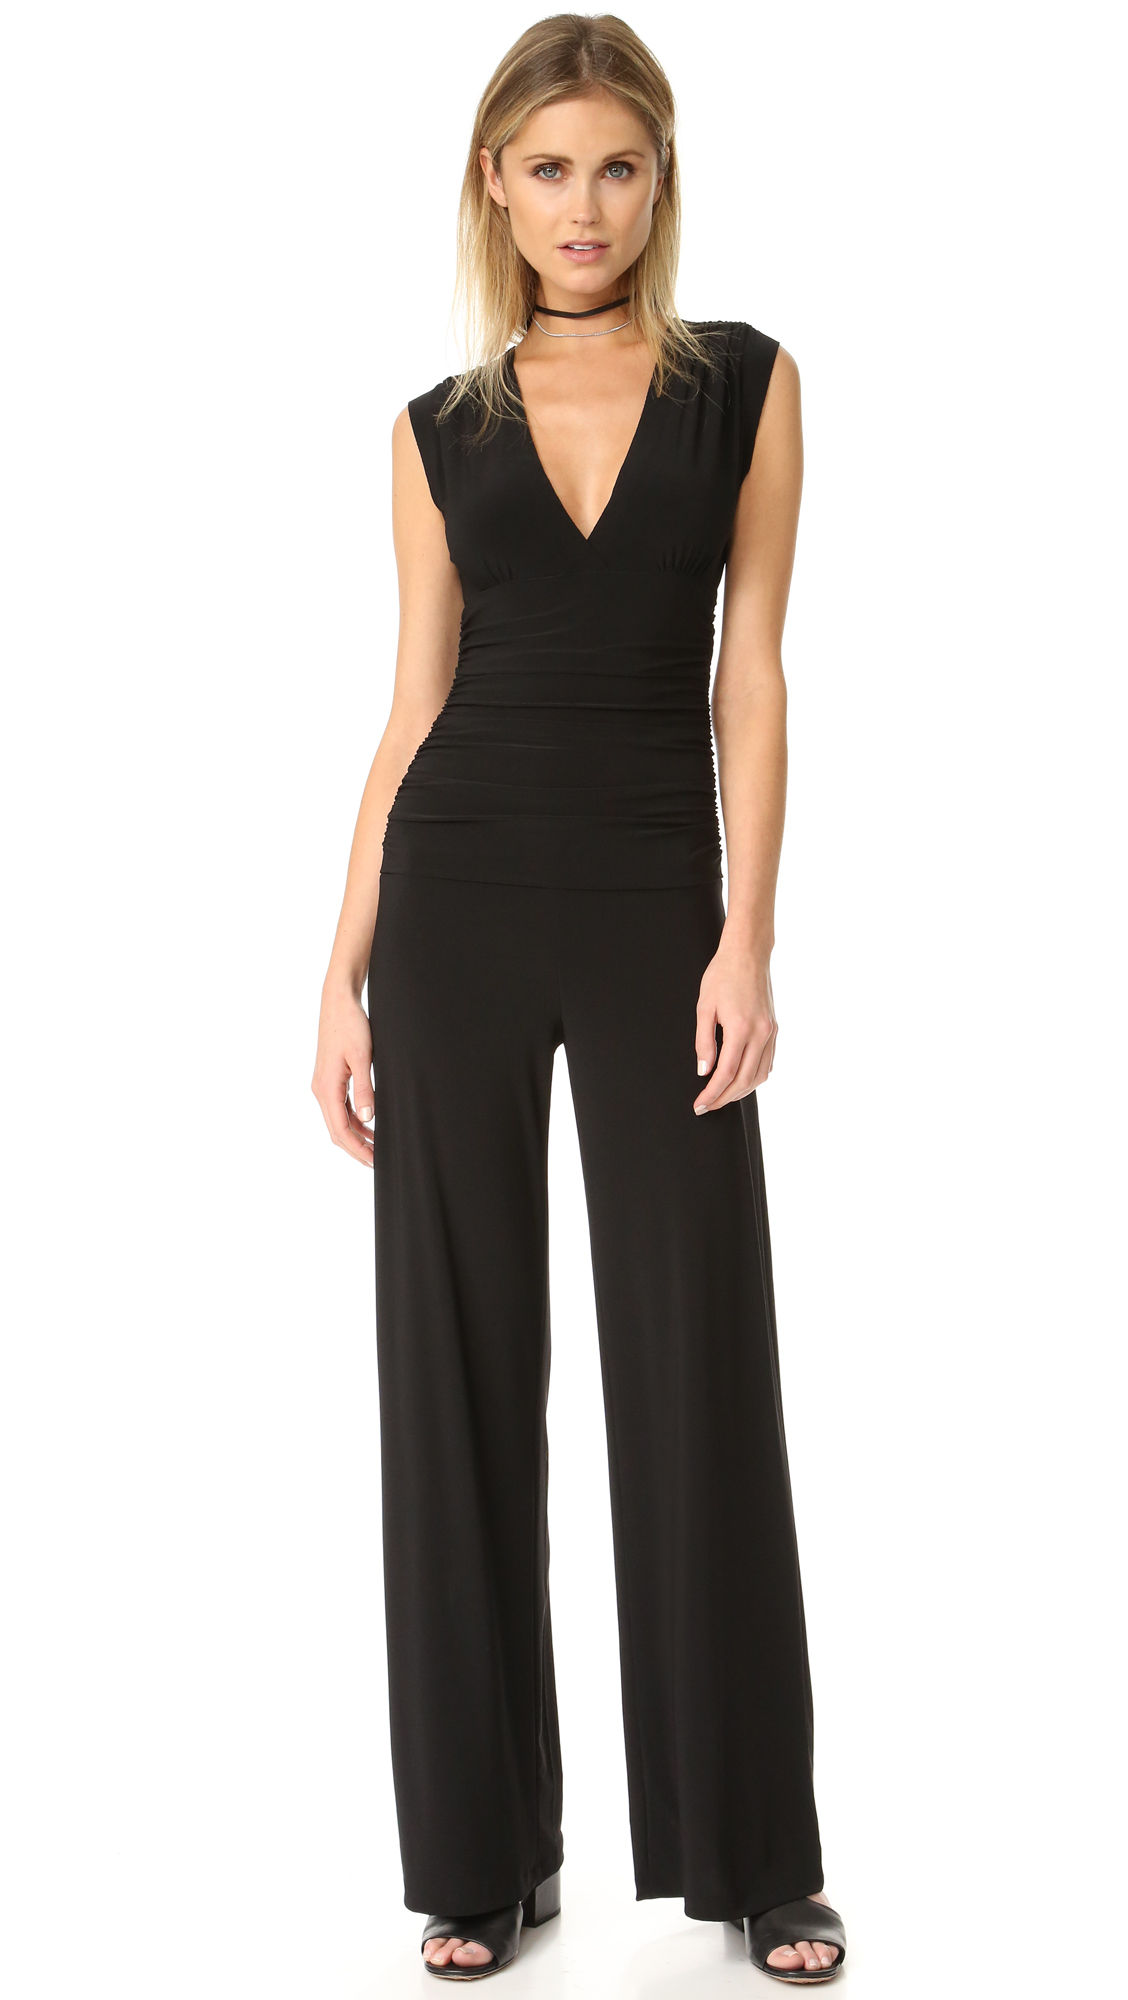 Norma Kamali Kamali Kulture Sleeveless V Neck Jumpsuit - Black